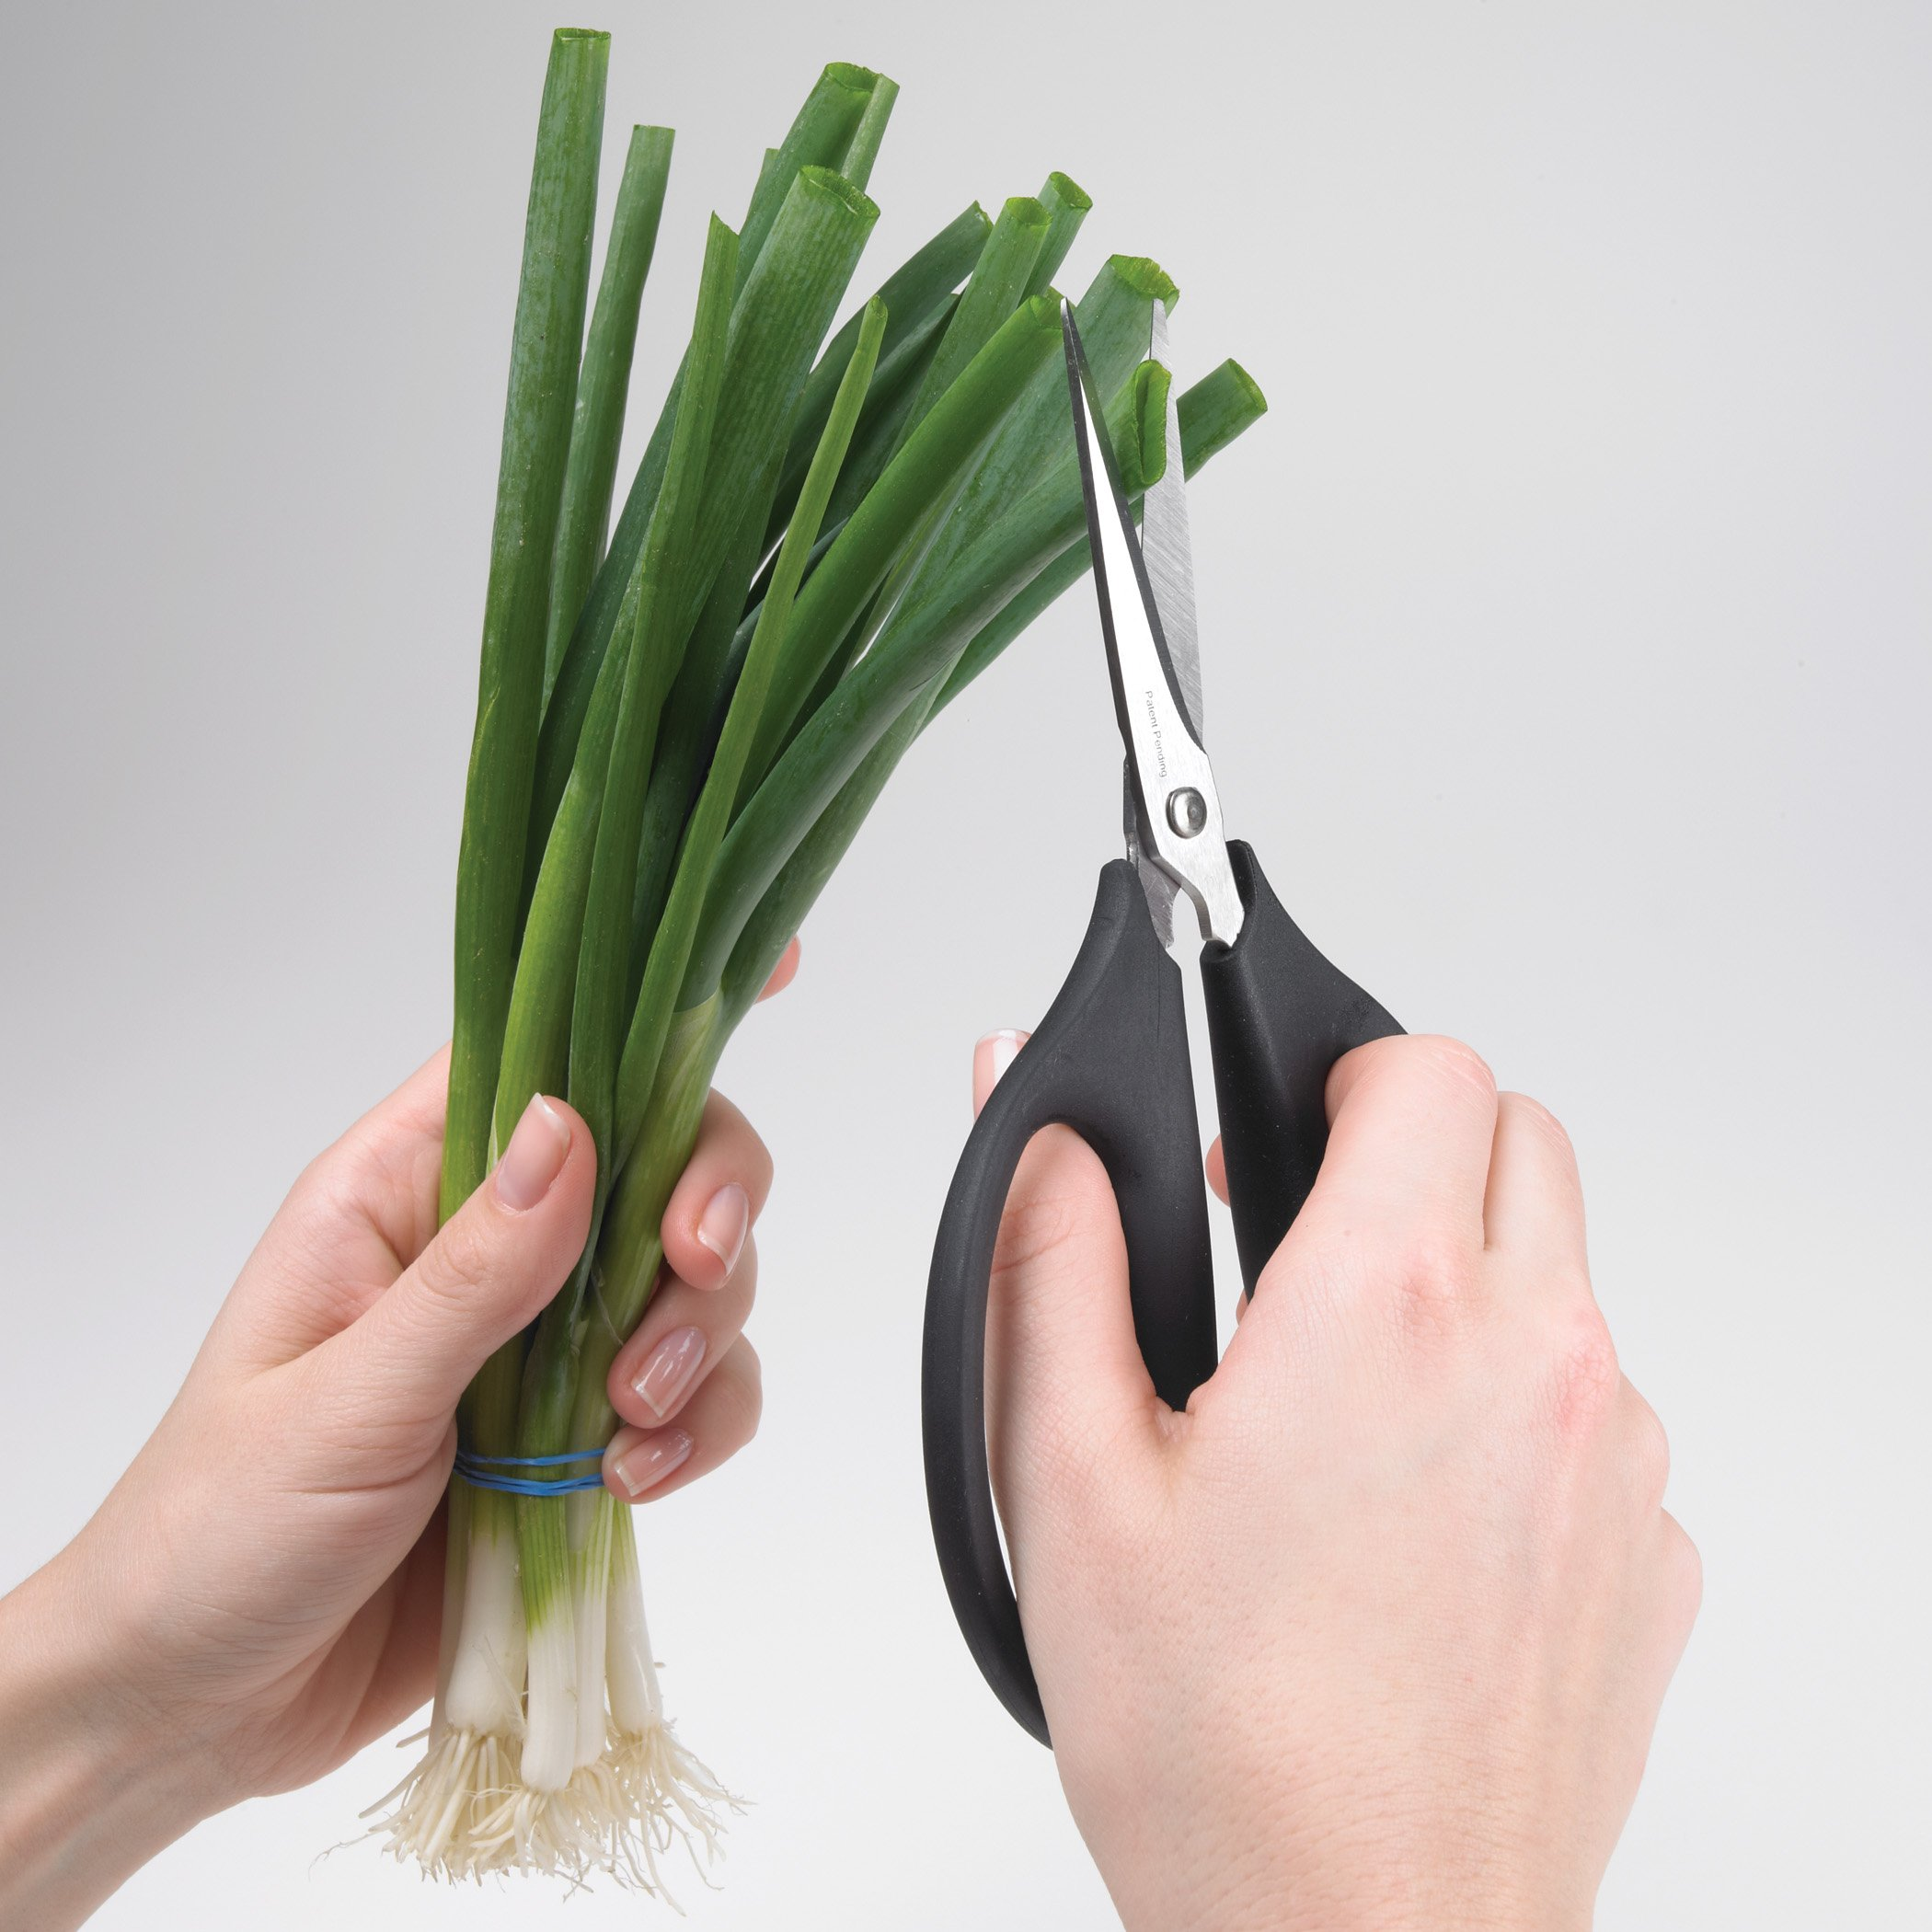 OXO Good Grips Flexible Kitchen Herb and Household Scissors